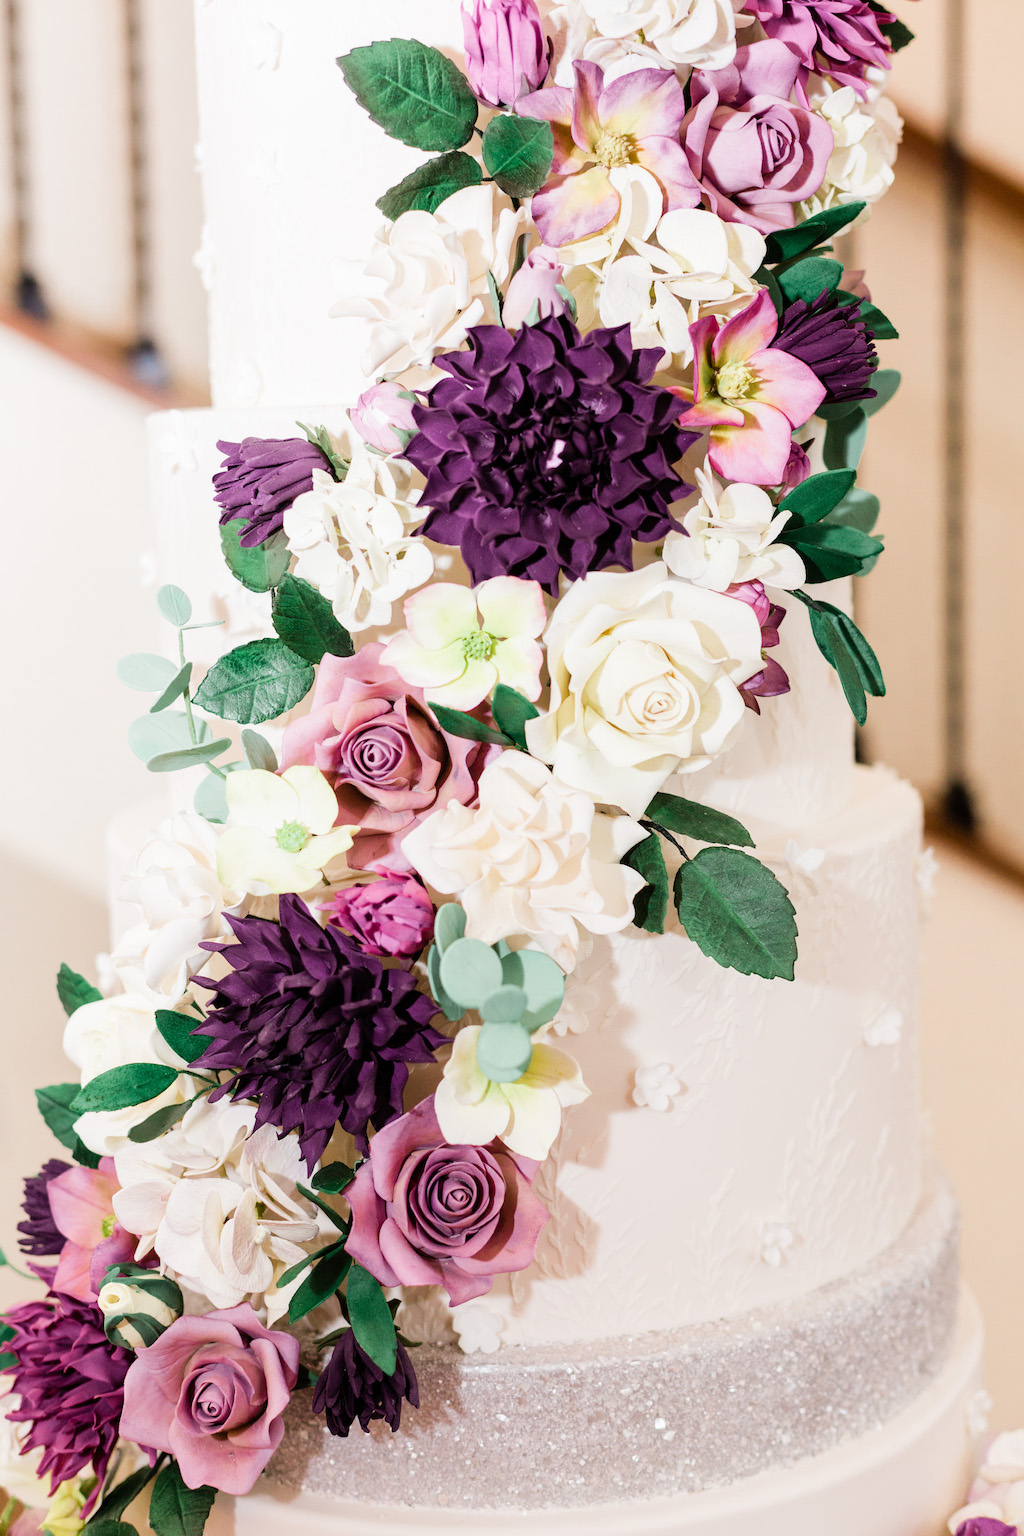 Elegant, White Wedding Cake with Lush Edible Sugar Floral Accents, White, Purple, Pink, Ivory Flowers with Silver Accents | Modern Tampa Bay Waterfront Wedding Venue Beso Del Sol